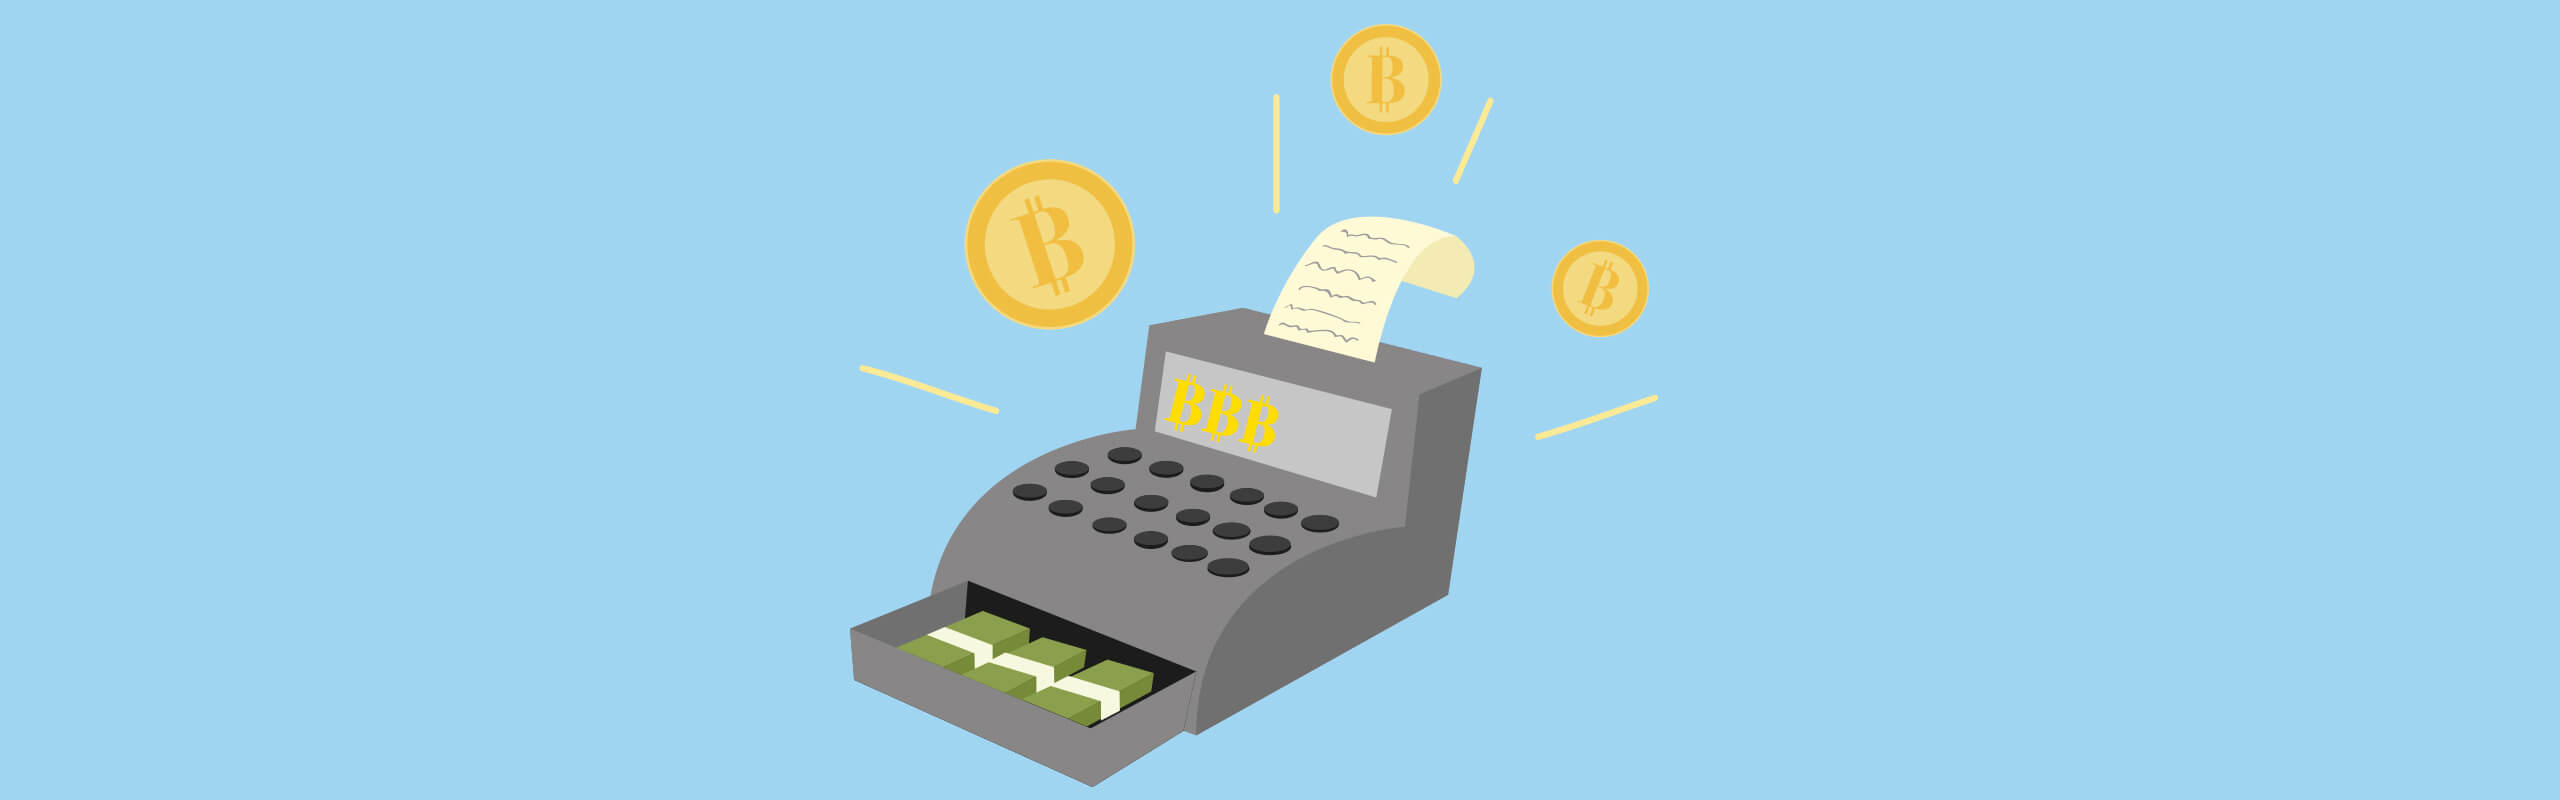 Digital Currency Bitcoin has the Power to Revolutionise E-commerce